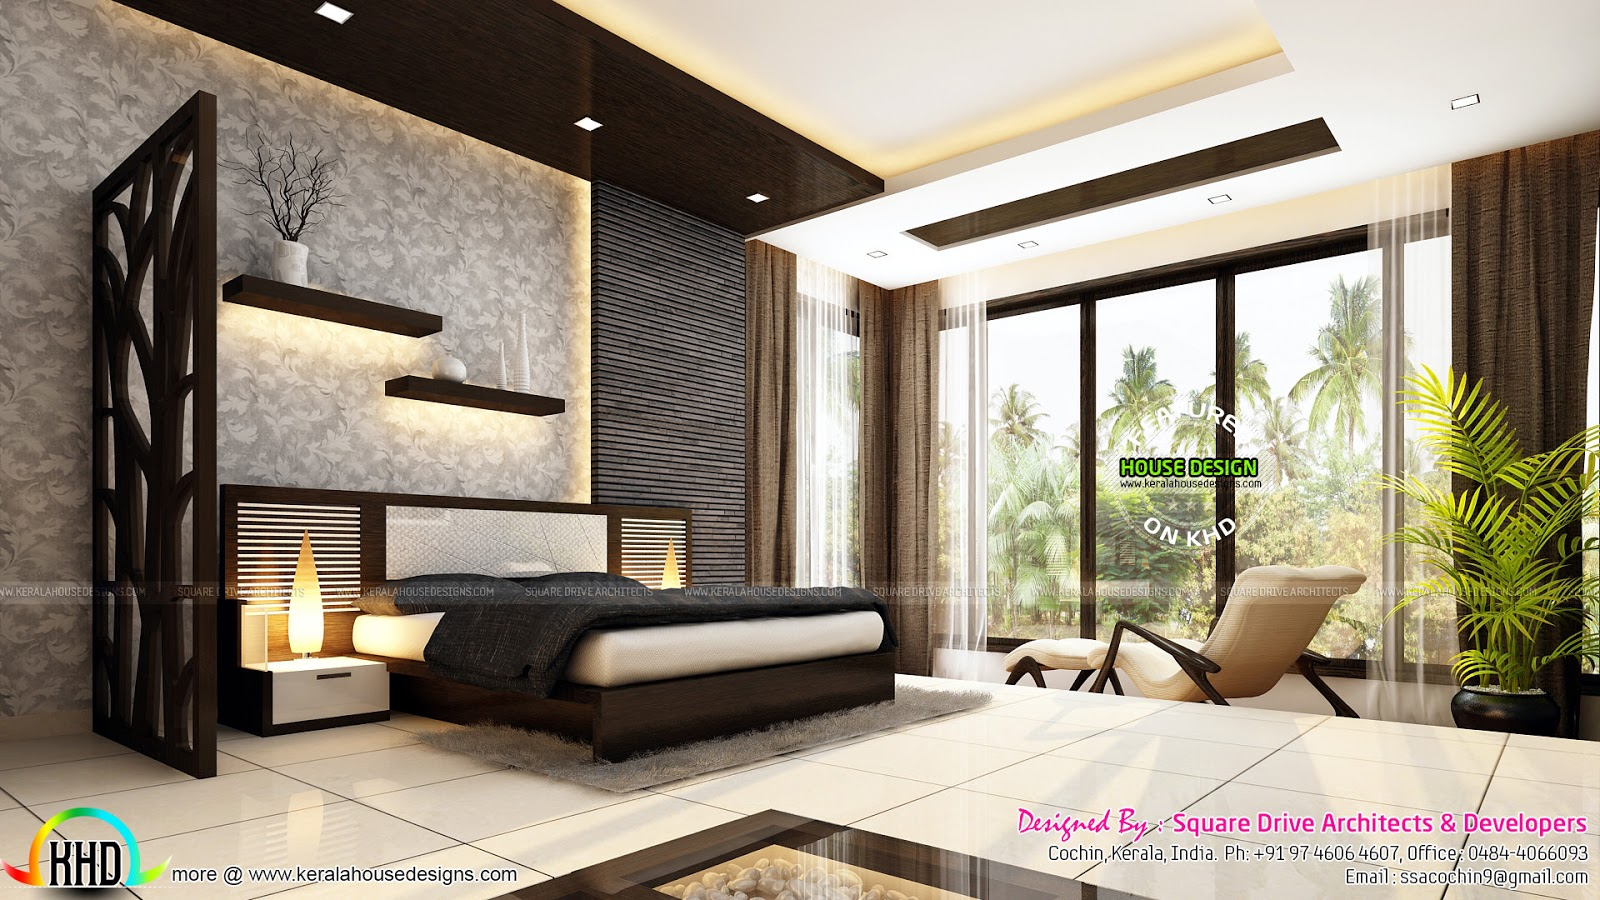 Very beautiful modern interior designs kerala home for Interior decoration bedroom photos